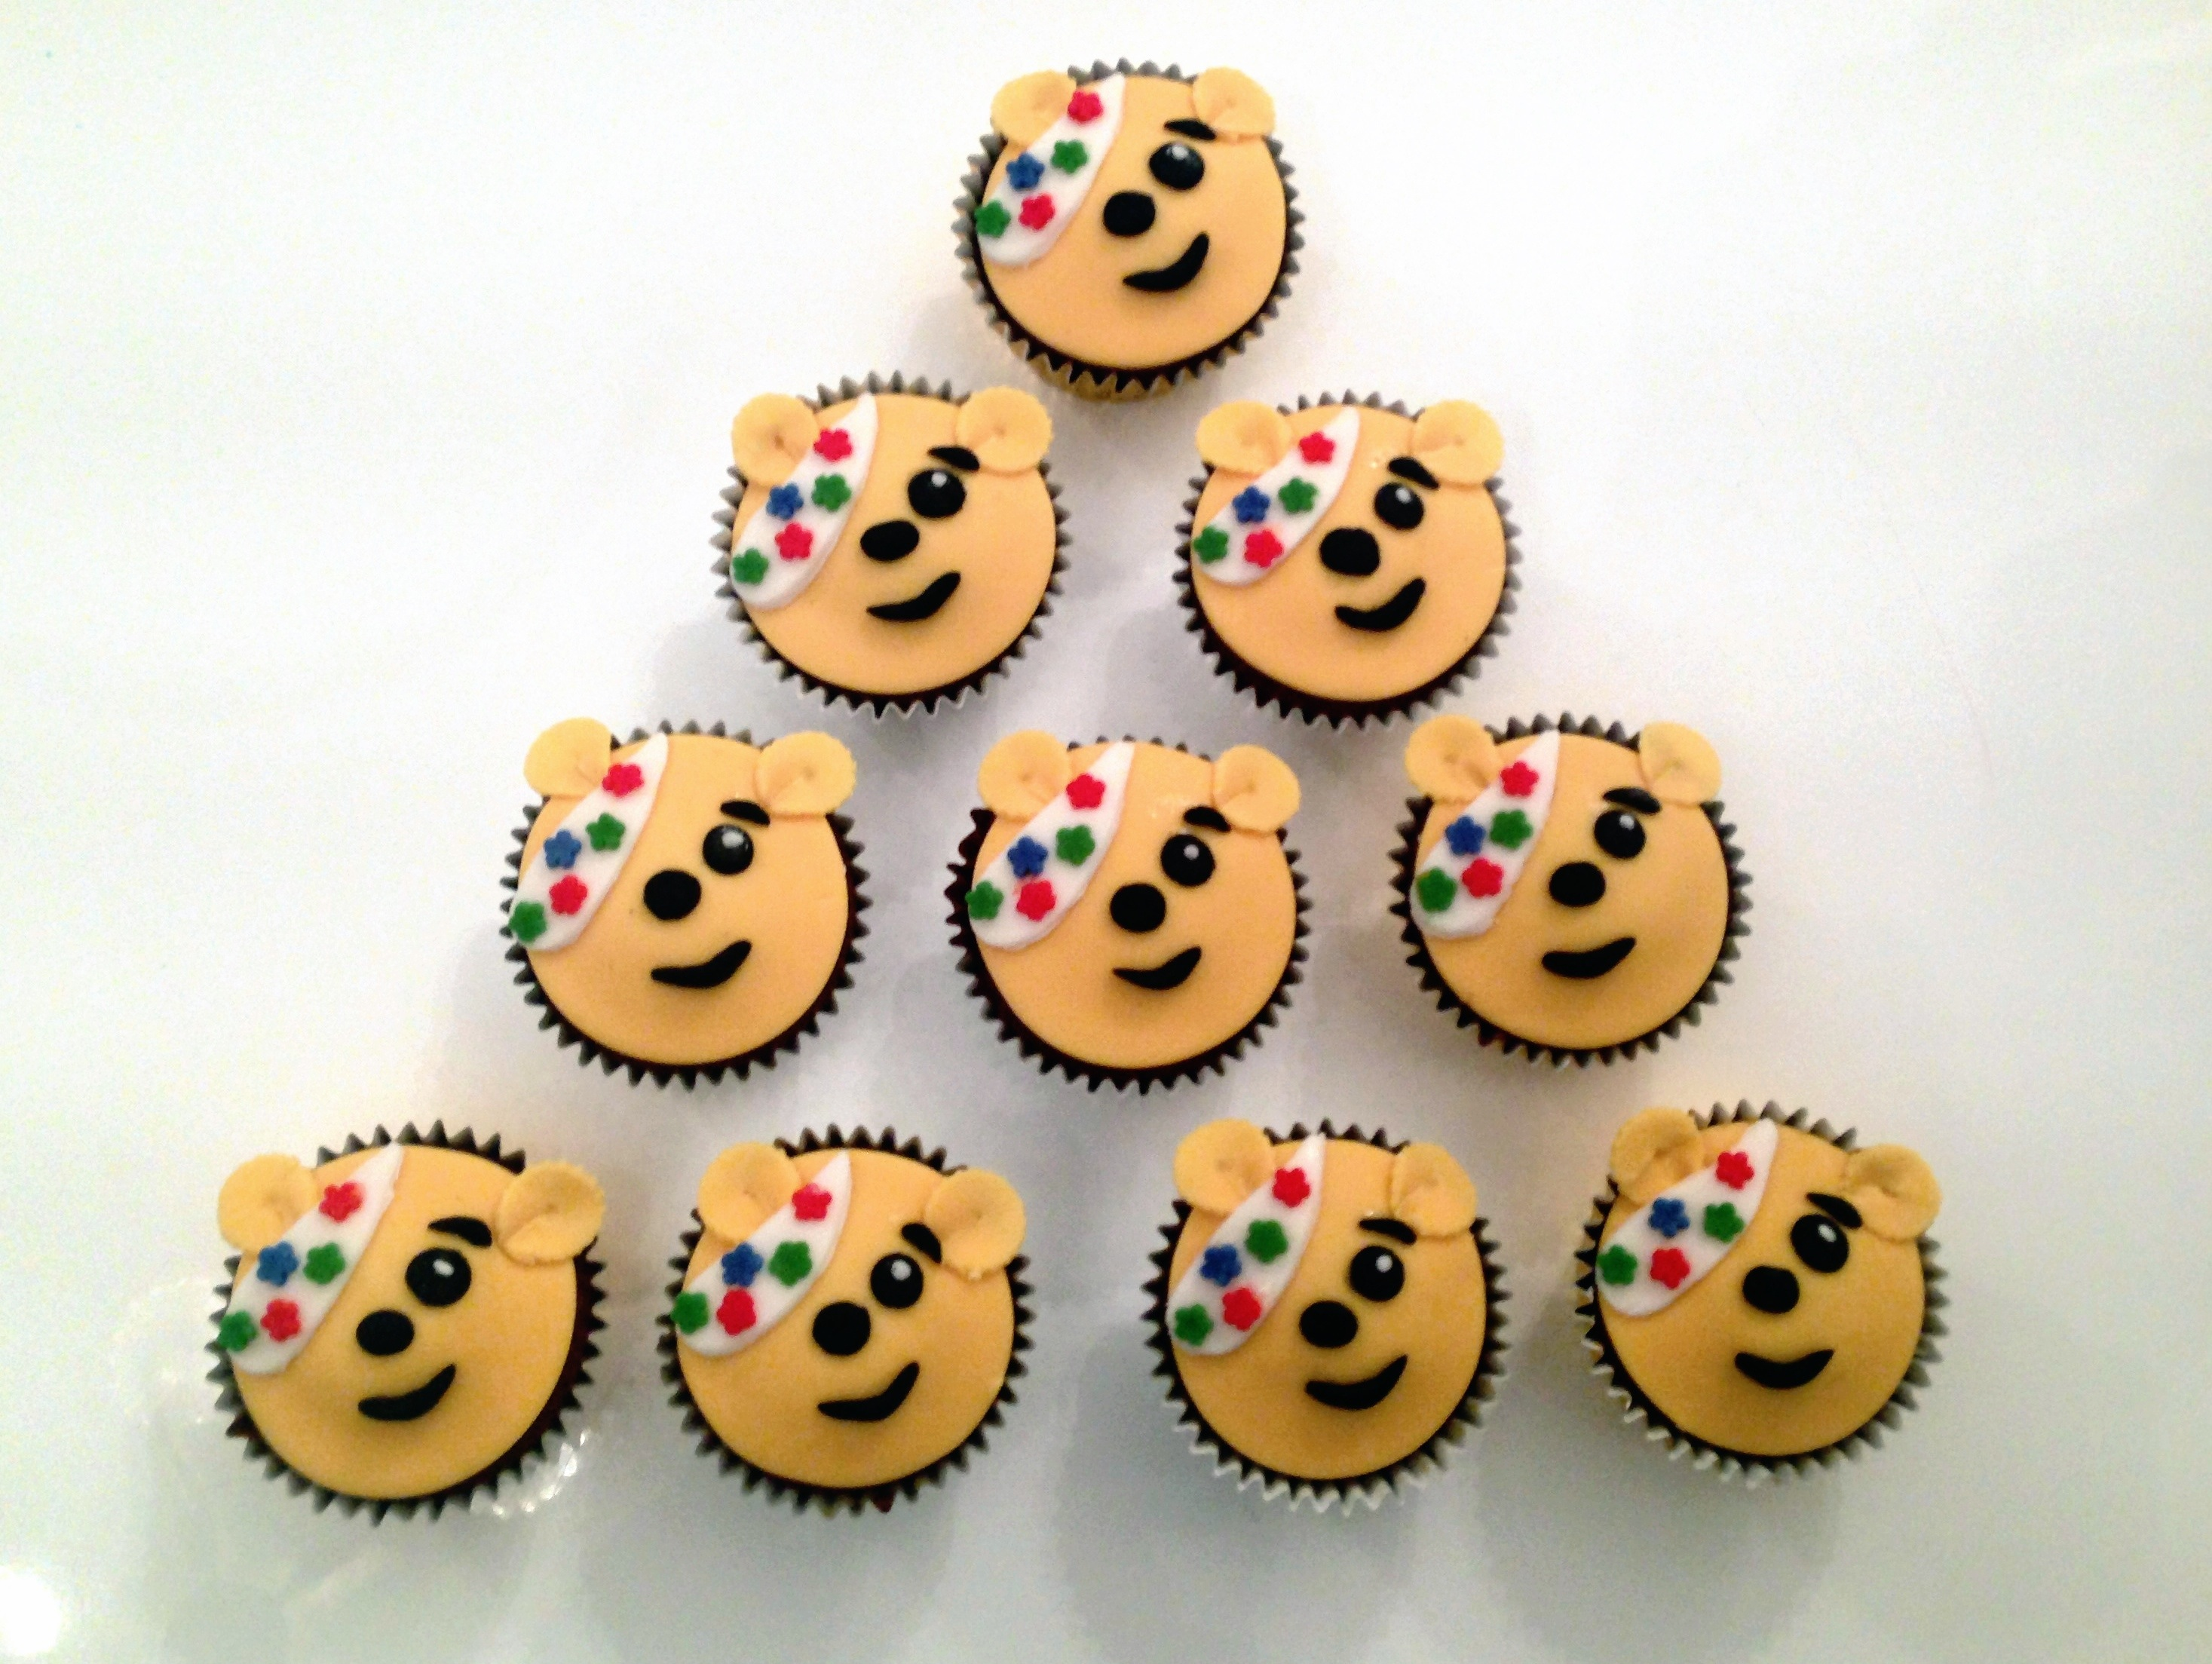 Children In Need Pudsey Cupcakes besides Buko Salad moreover Doce Serradura further Christmas Leftovers in addition Chocolate Orange Cake. on halloween pudding